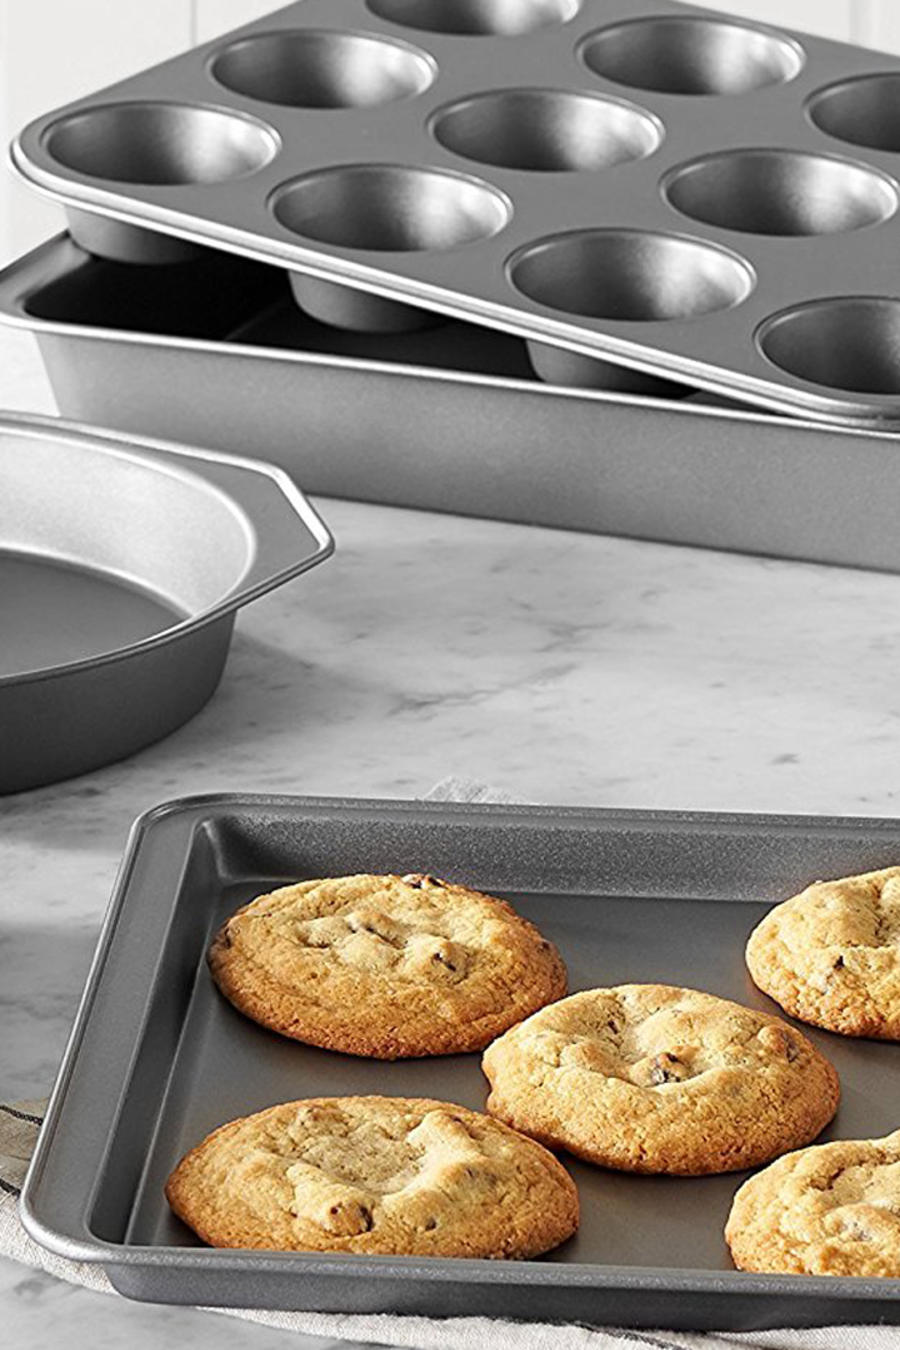 Must-Have Items to Perfect Baking